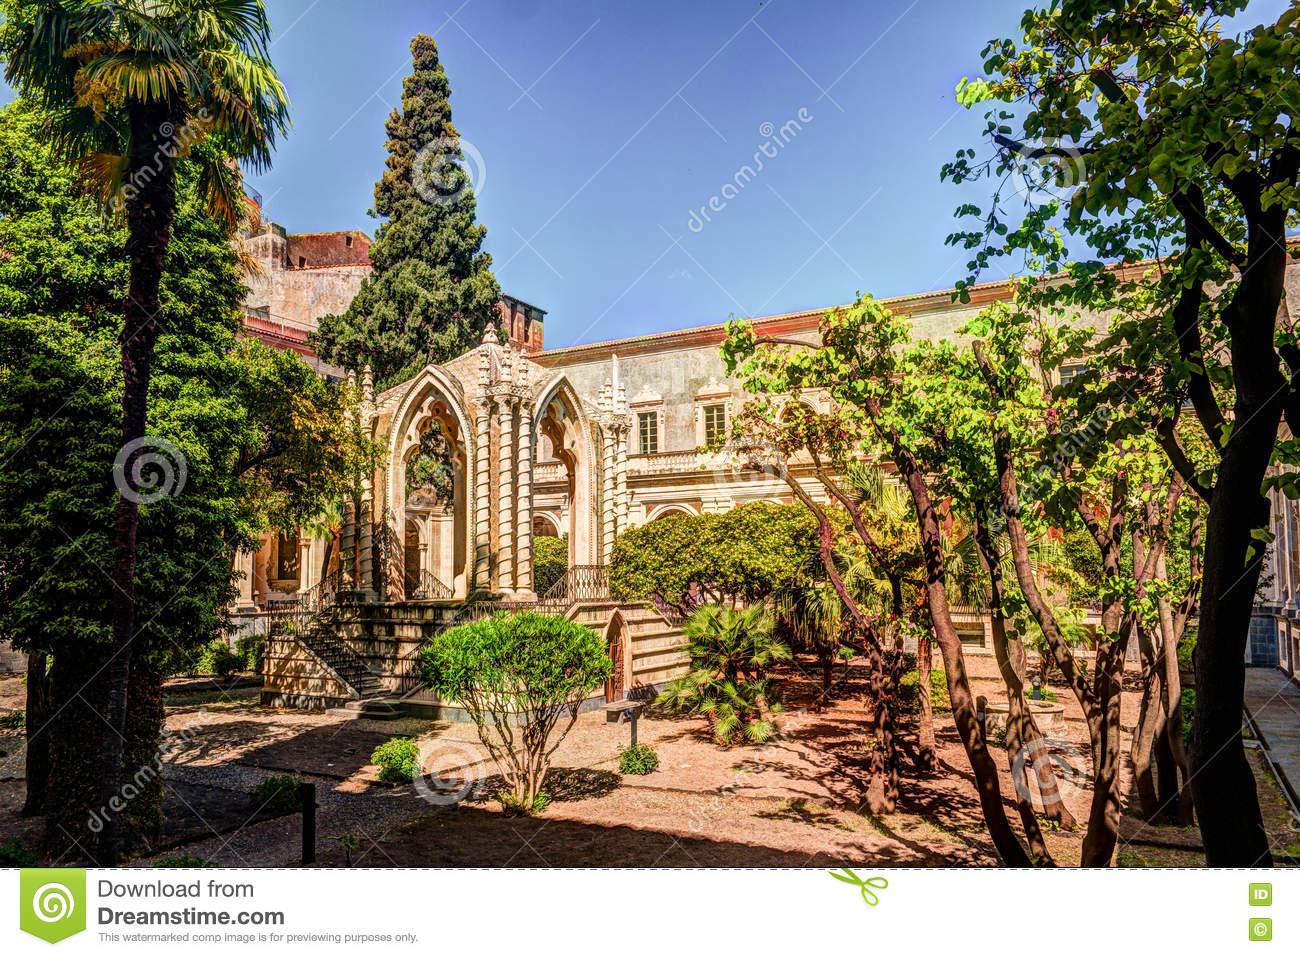 Cloister of the Benedictine Monastery of San Nicolo l`Arena in Catania,